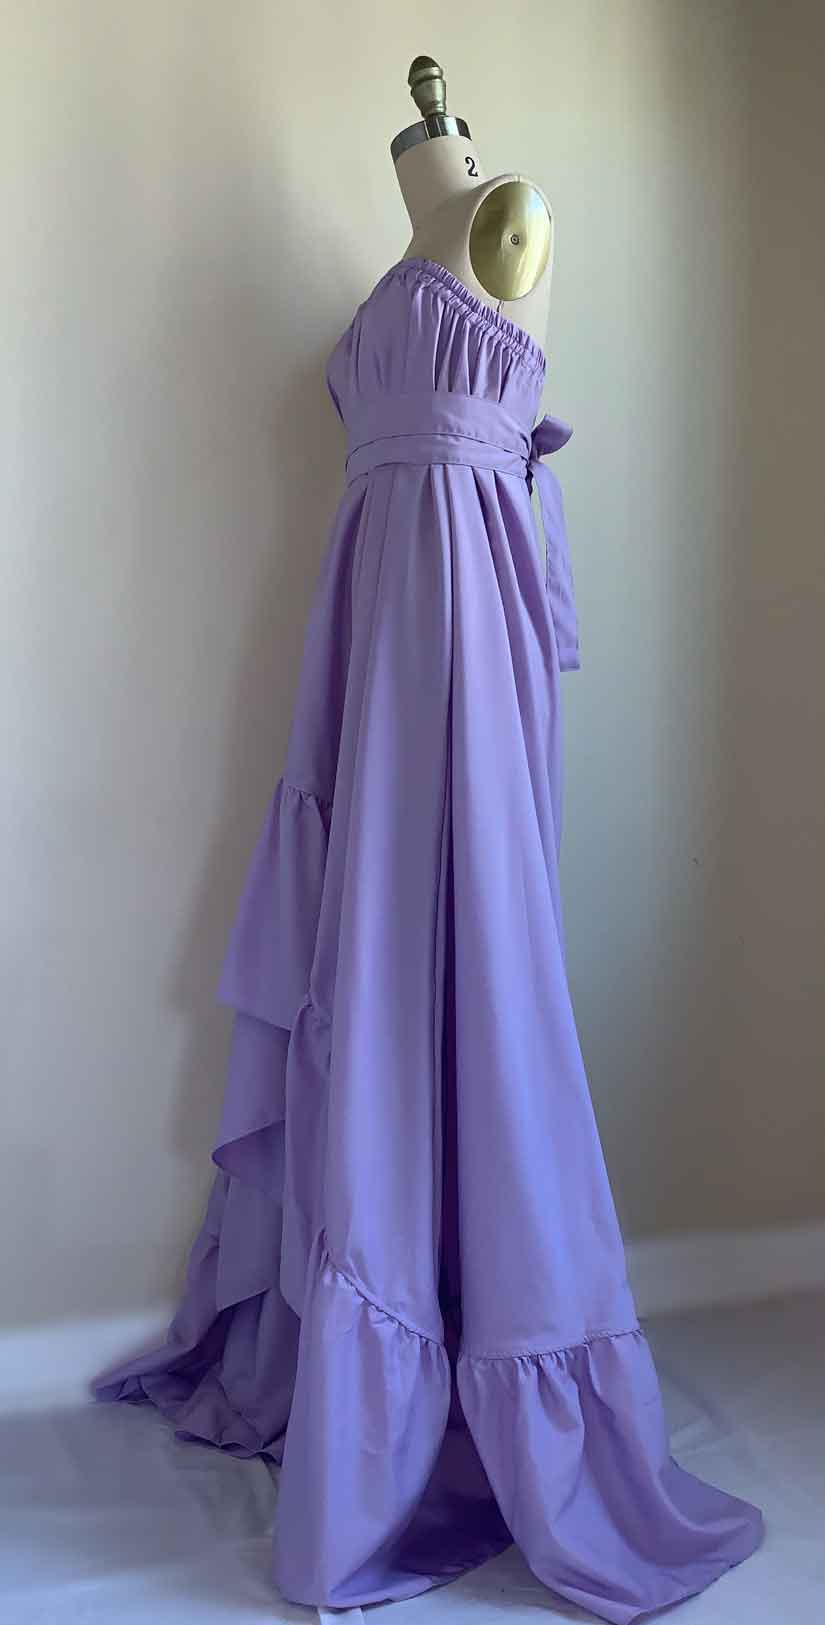 Goddess Dress 10 Inch Ruffle in Lavender side